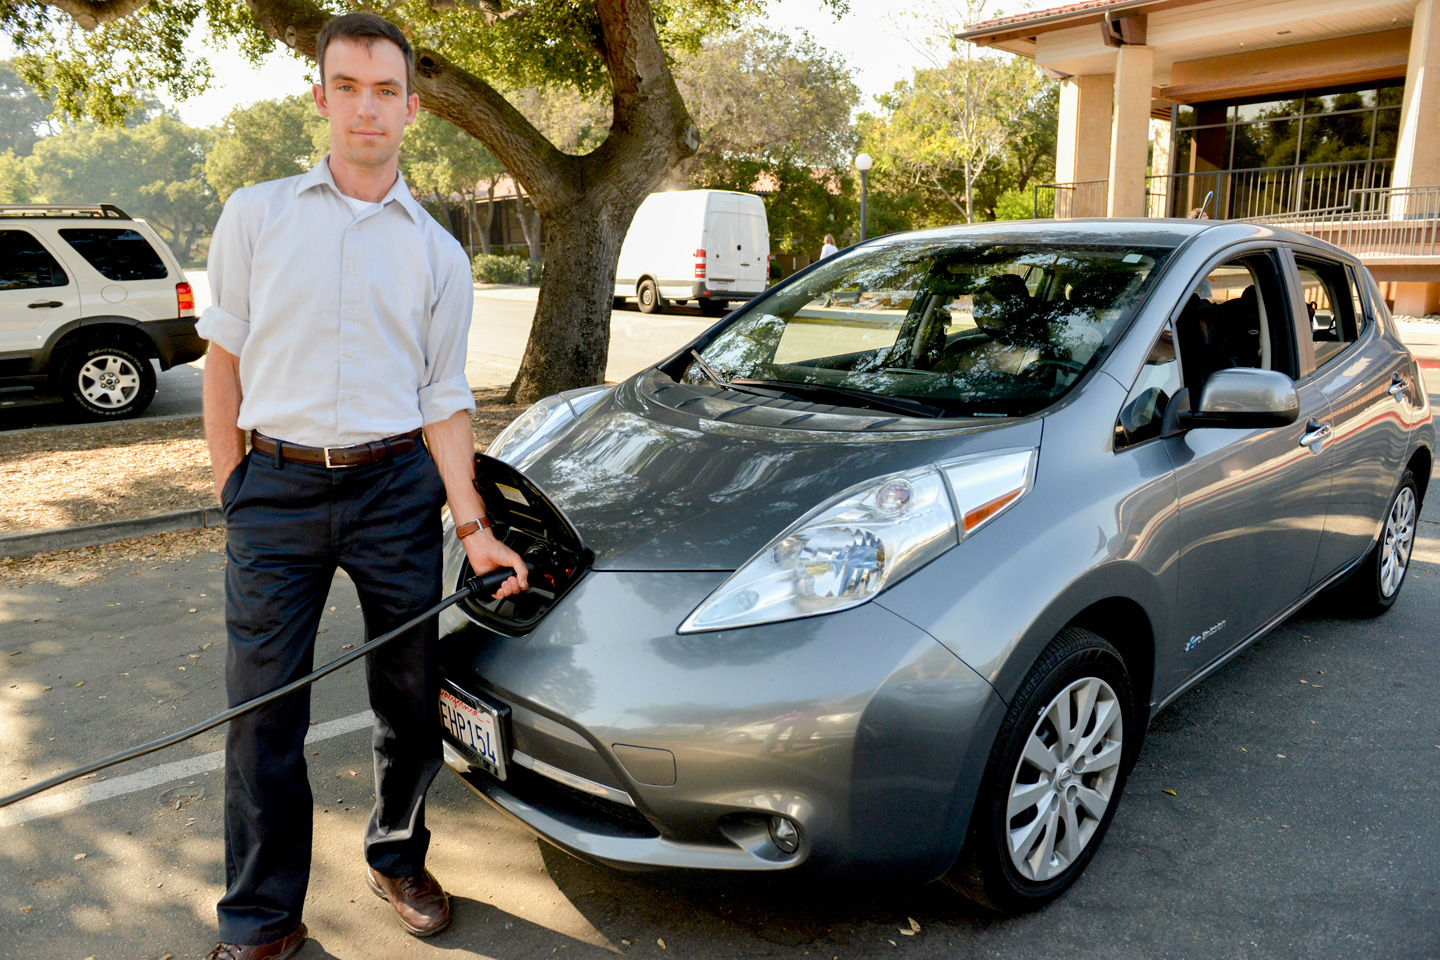 Battery Electric Cars Are A Better Choice For Reducing Emissions